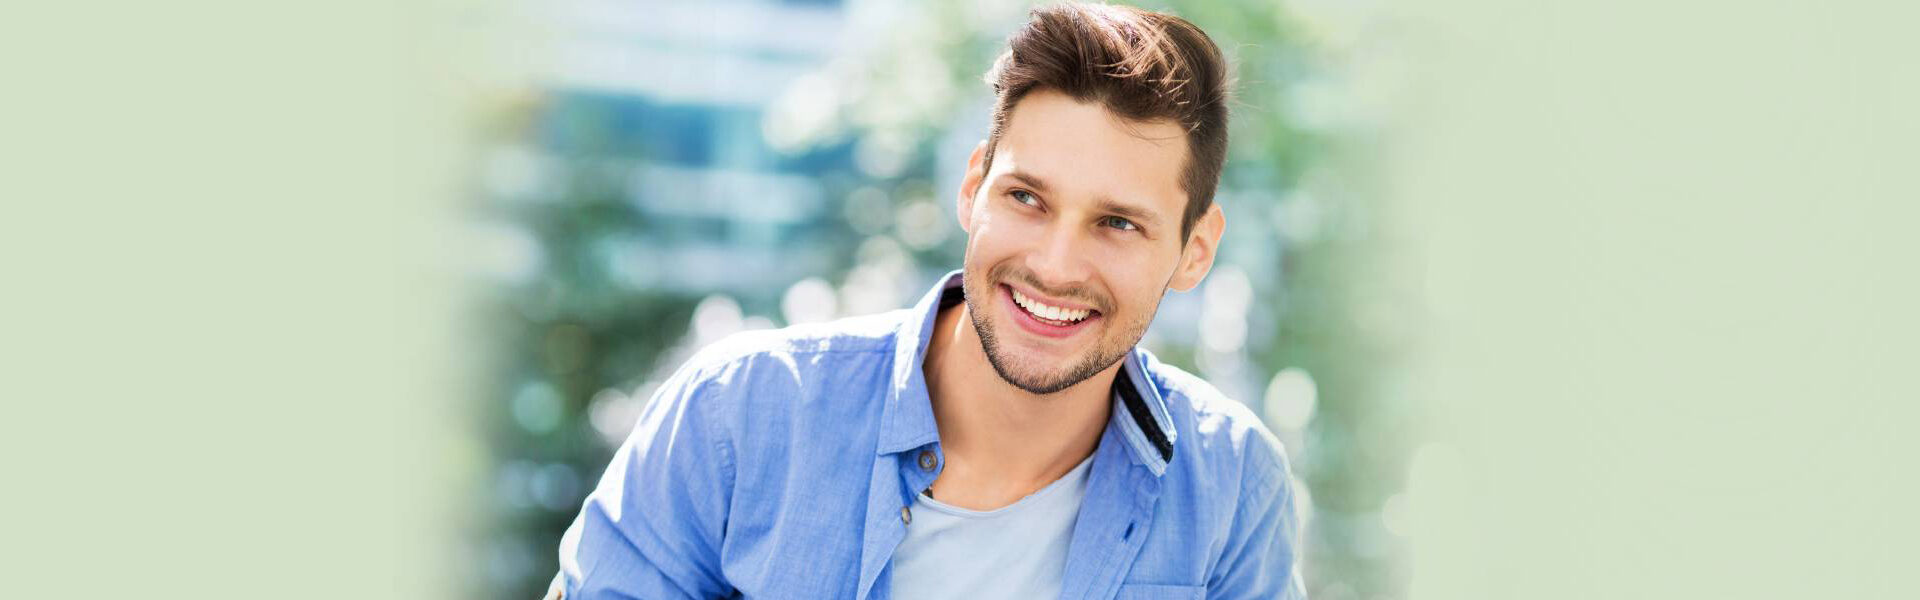 All-on-4 Dental Implants in Concord, MA